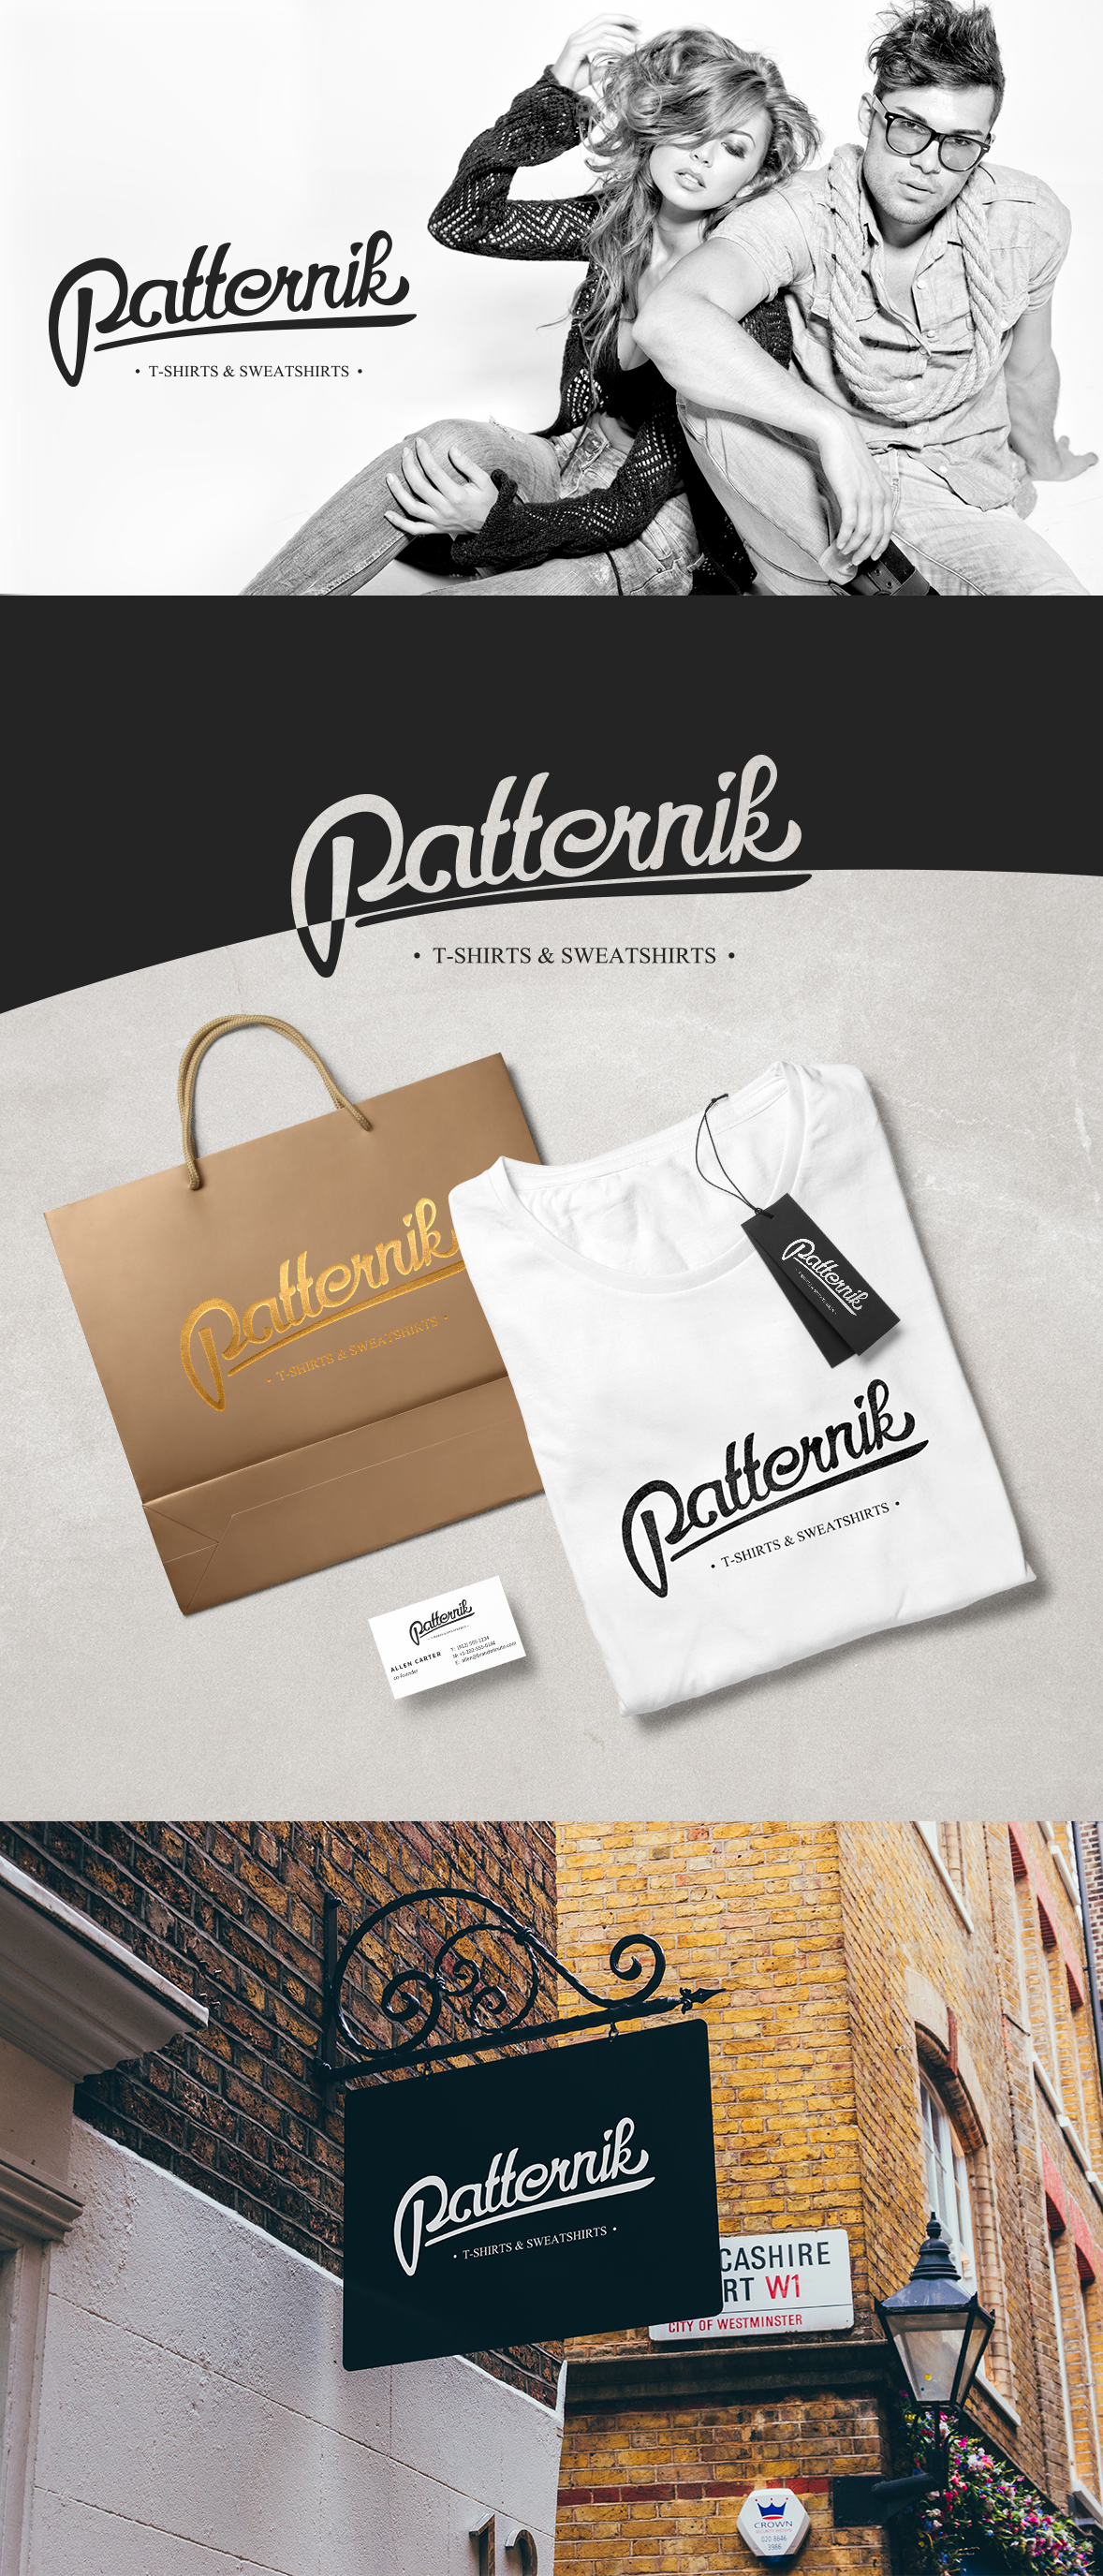 Clothes brand Patternik